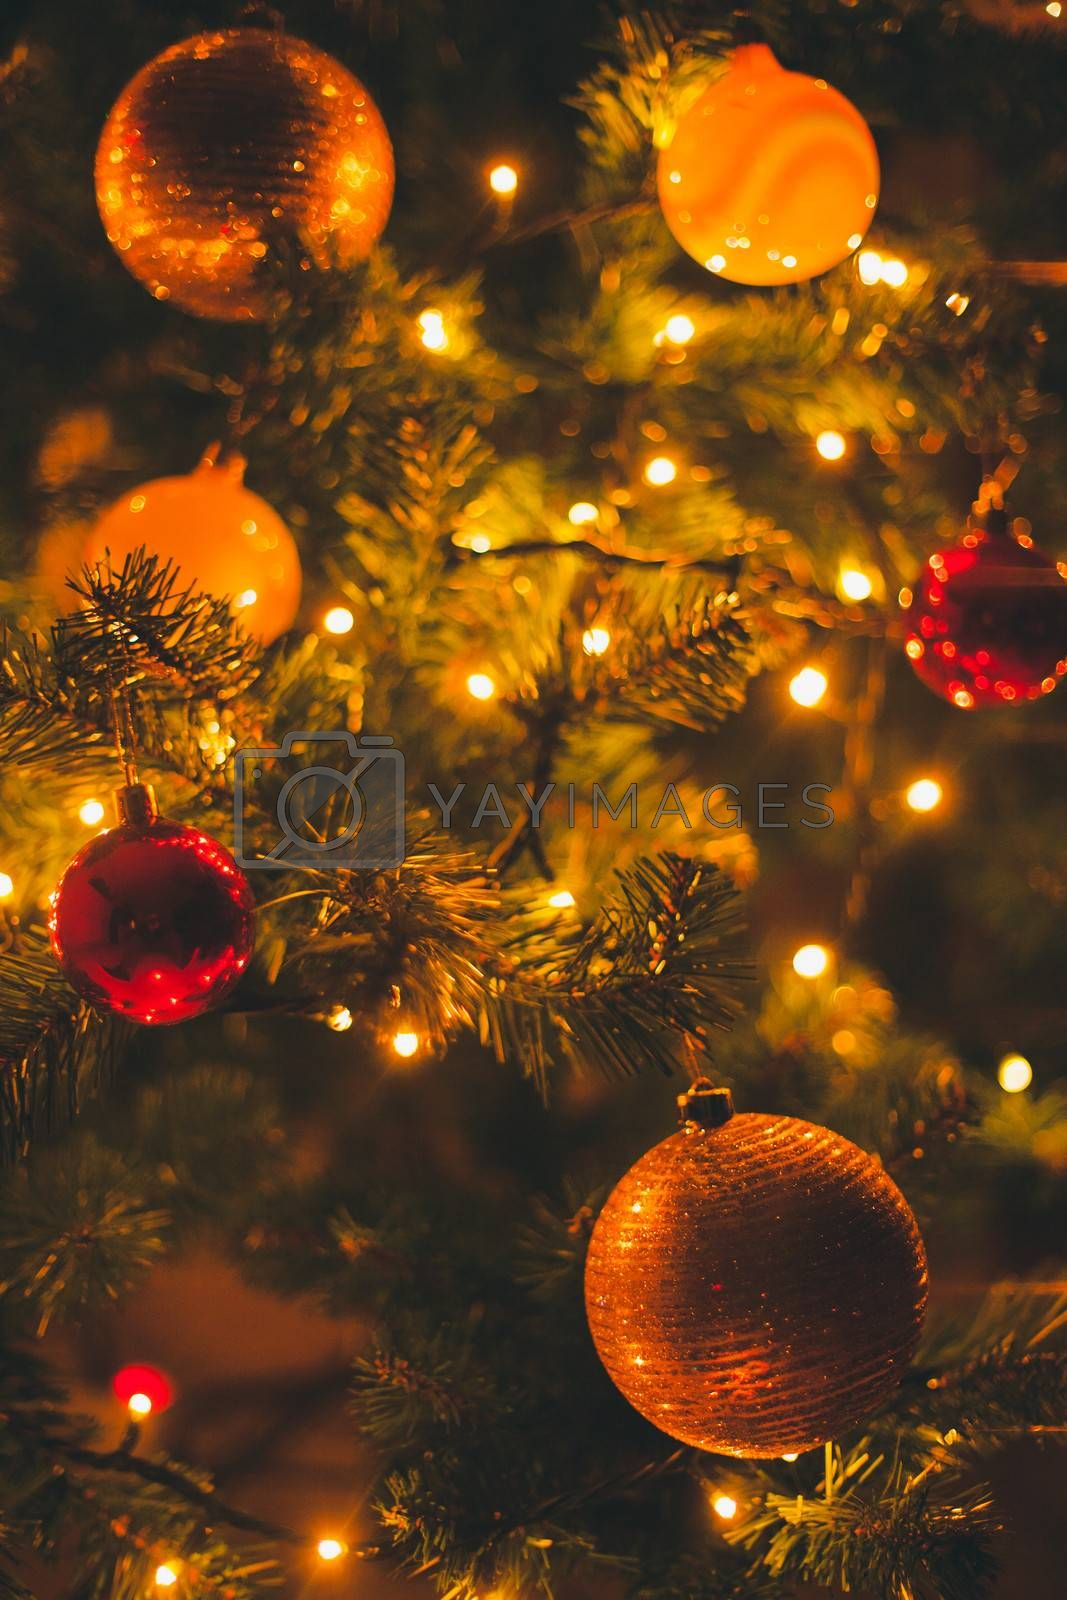 Royalty free image of Christmas decoration details in warm home by Lcrespi